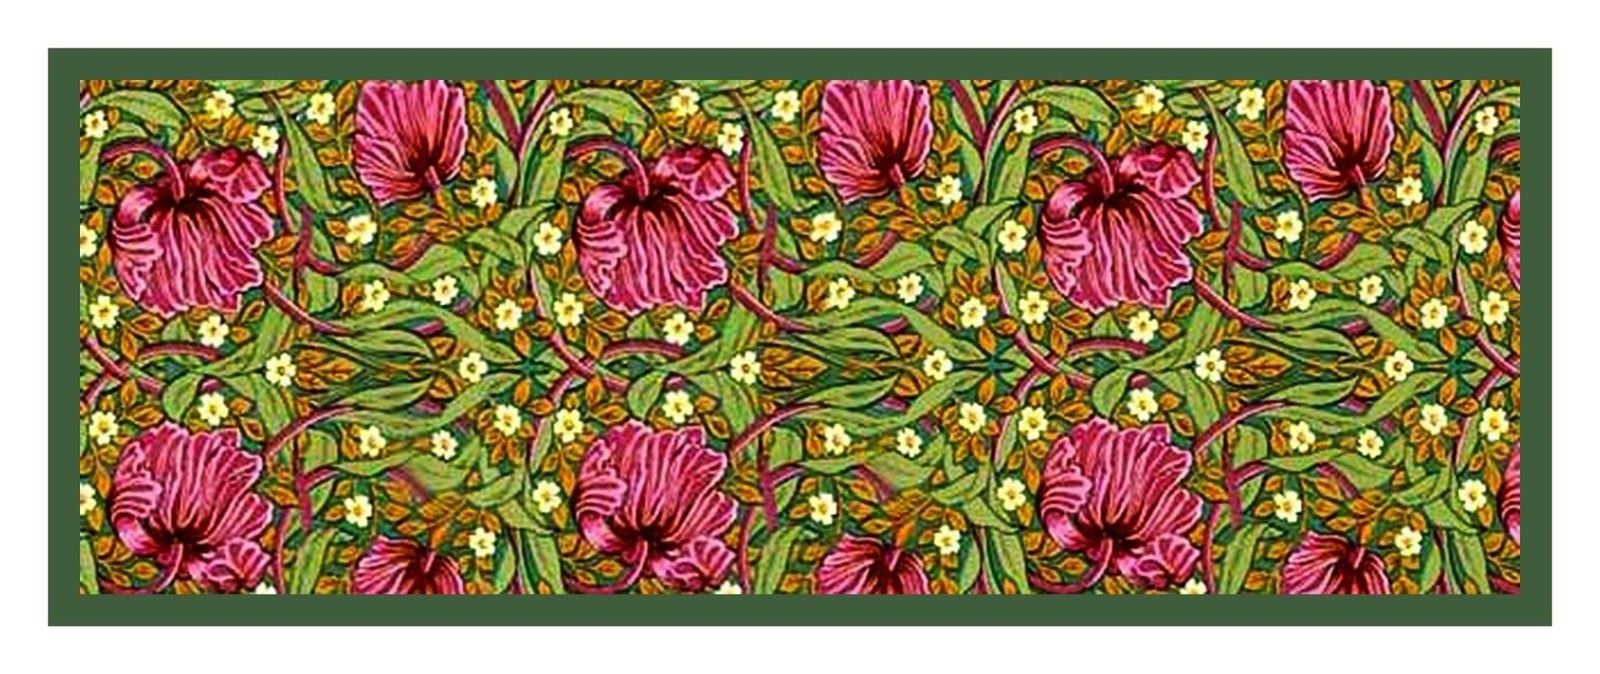 William Morris Green Pimpernel Runner Counted Cross Stitch Pattern